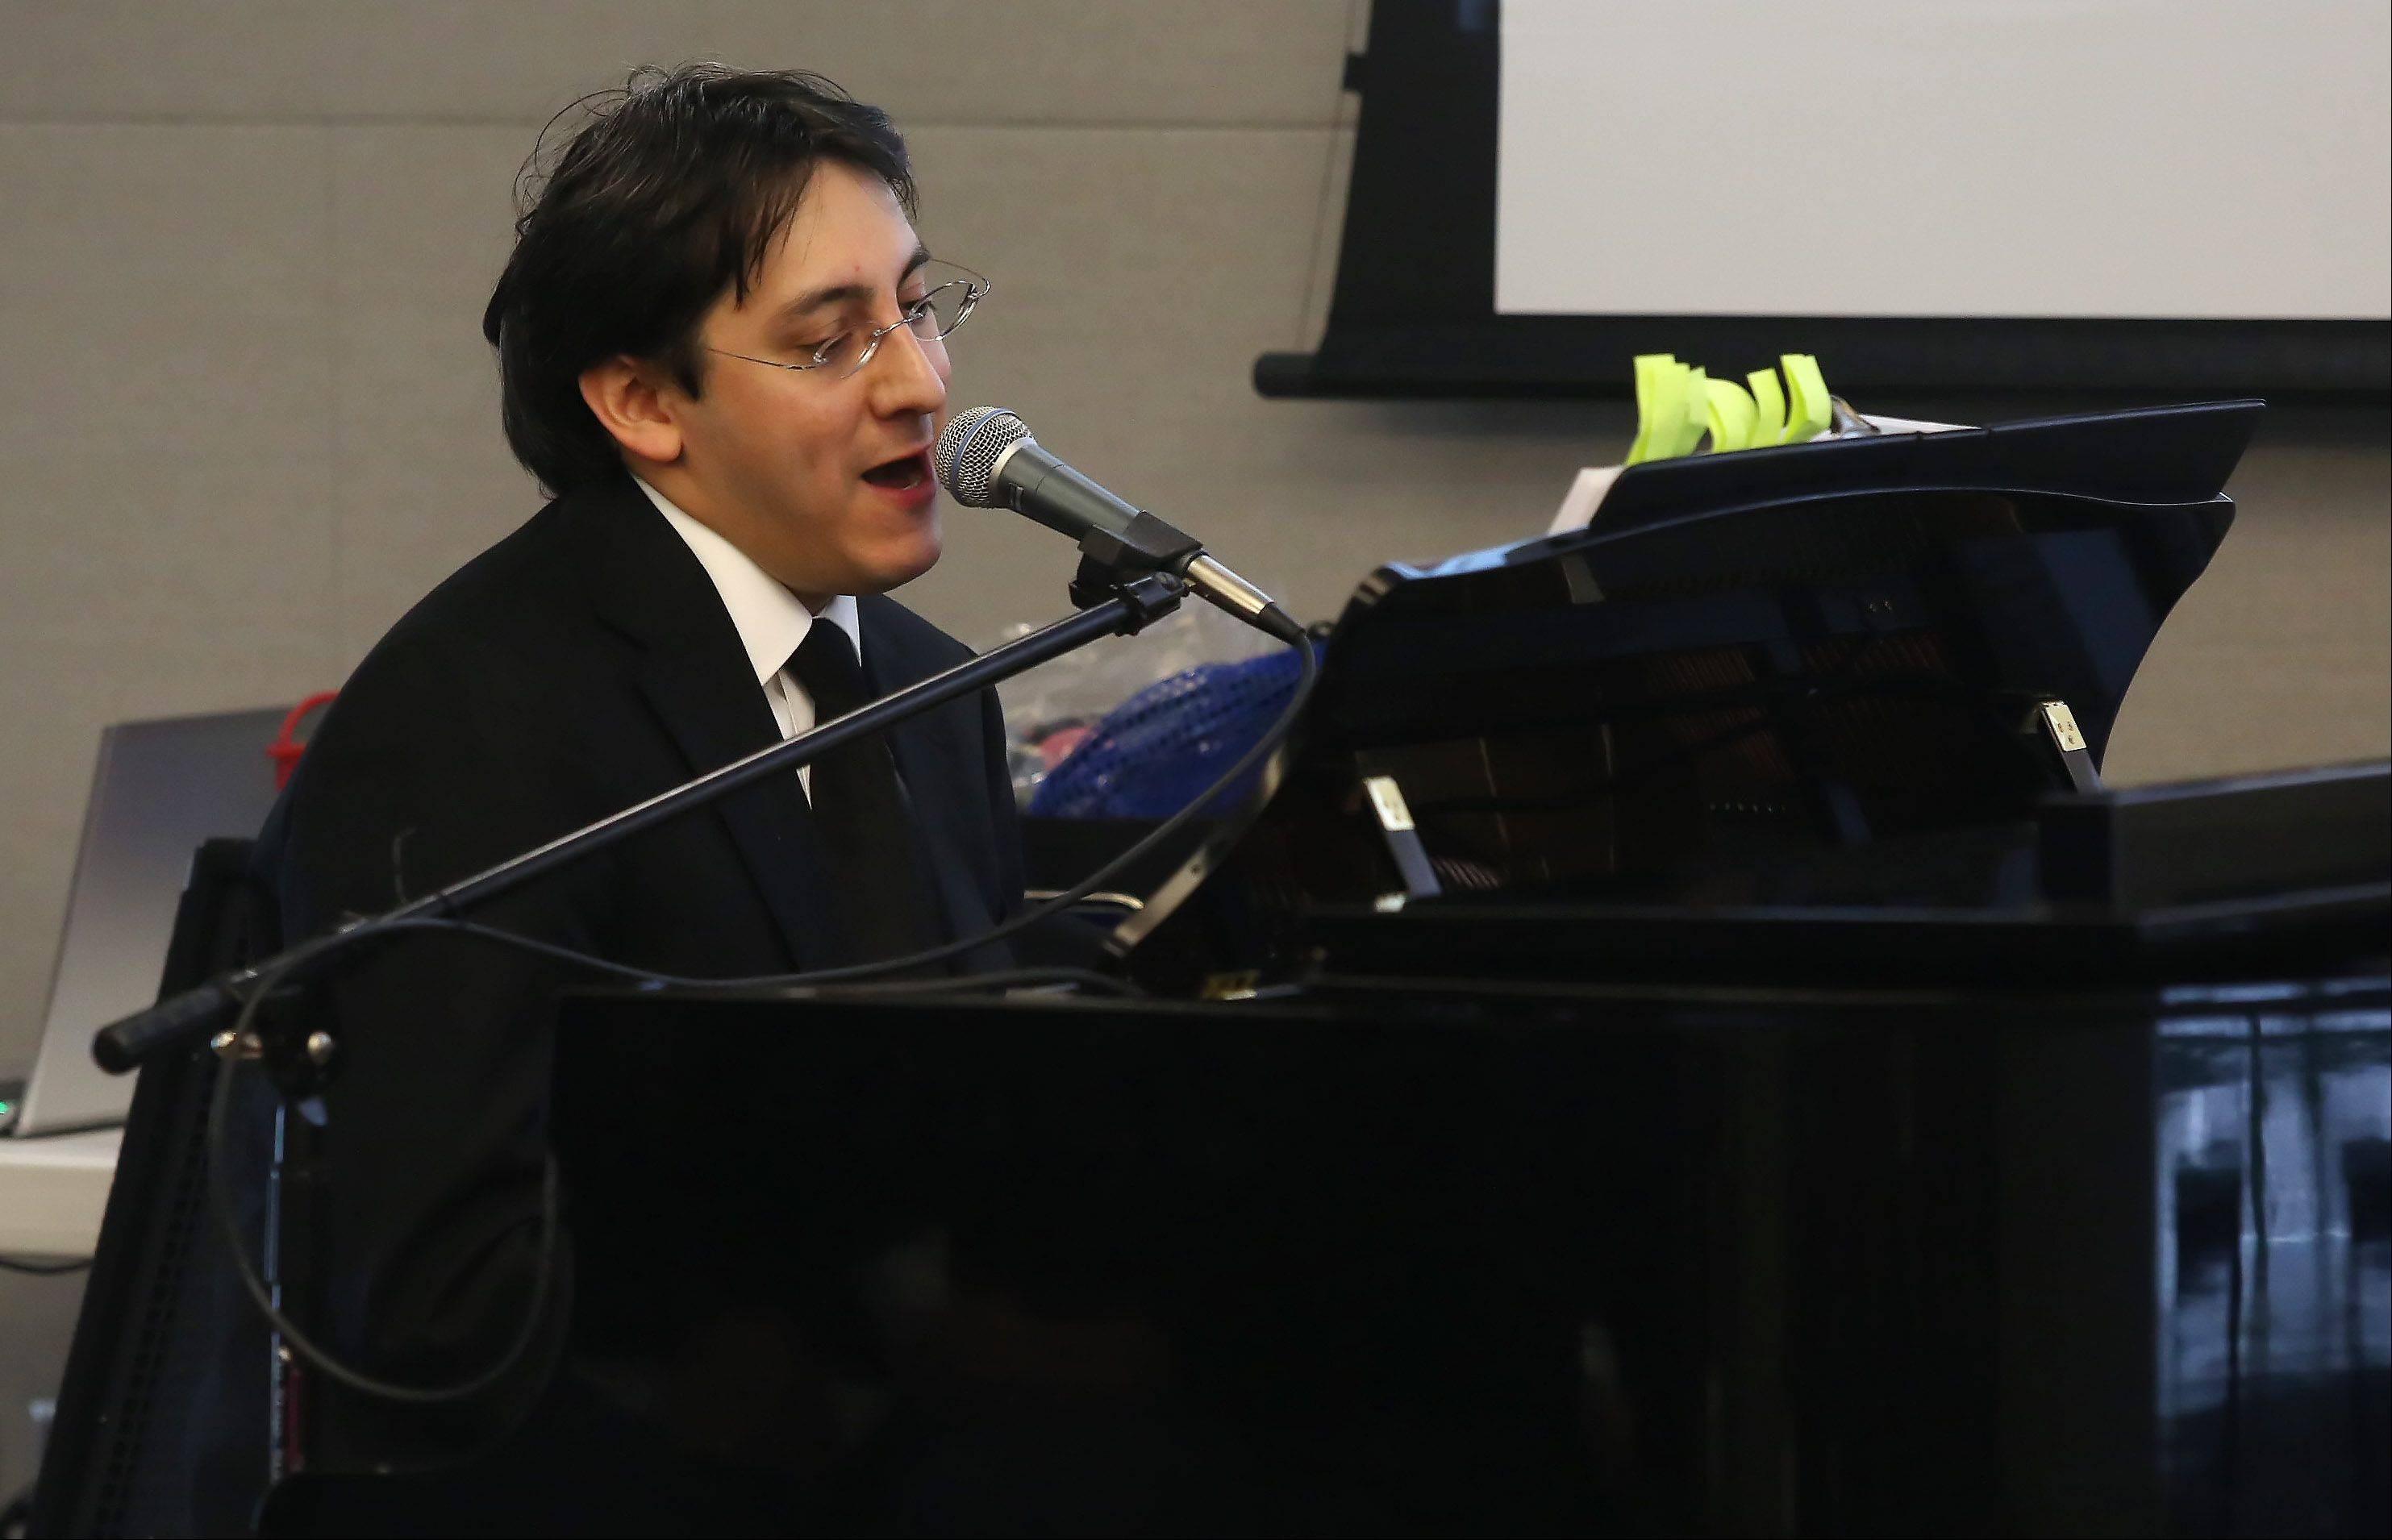 Musician and historian Jose Sandoval of Mount Prospect shares stories and songs during The Spirit of Motown program at the Vernon Area Public Library in Lincolnshire on Sunday. Sandoval played piano as he explored the story of Motown, the record label and sound that bridged the racial divide of the 60s.